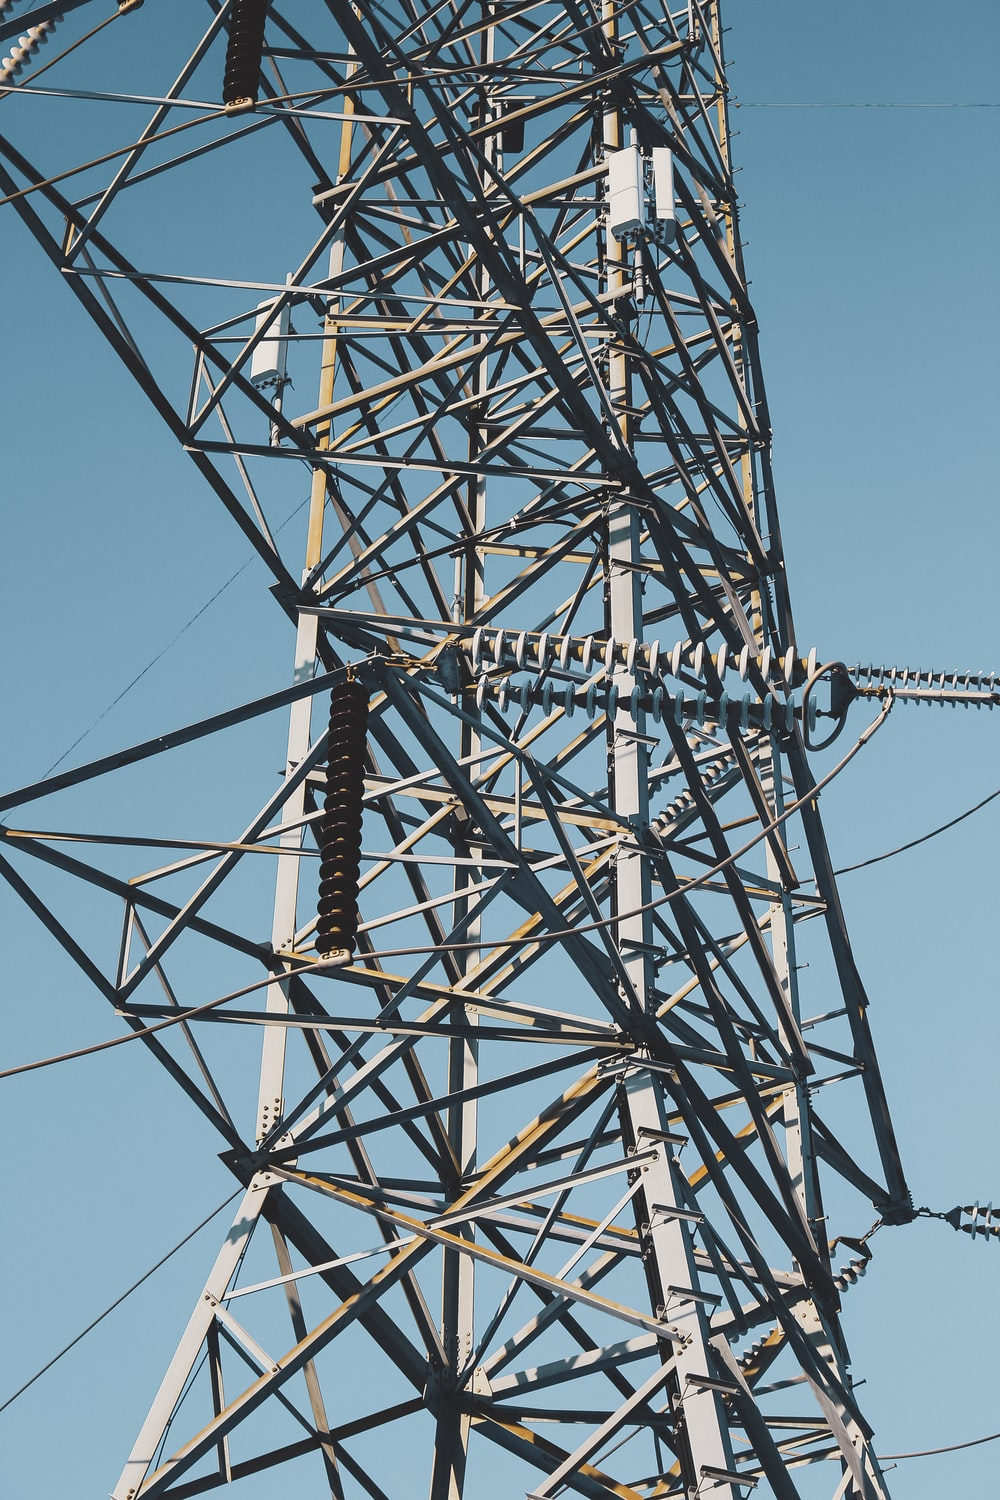 black electric tower under blue sky during daytime